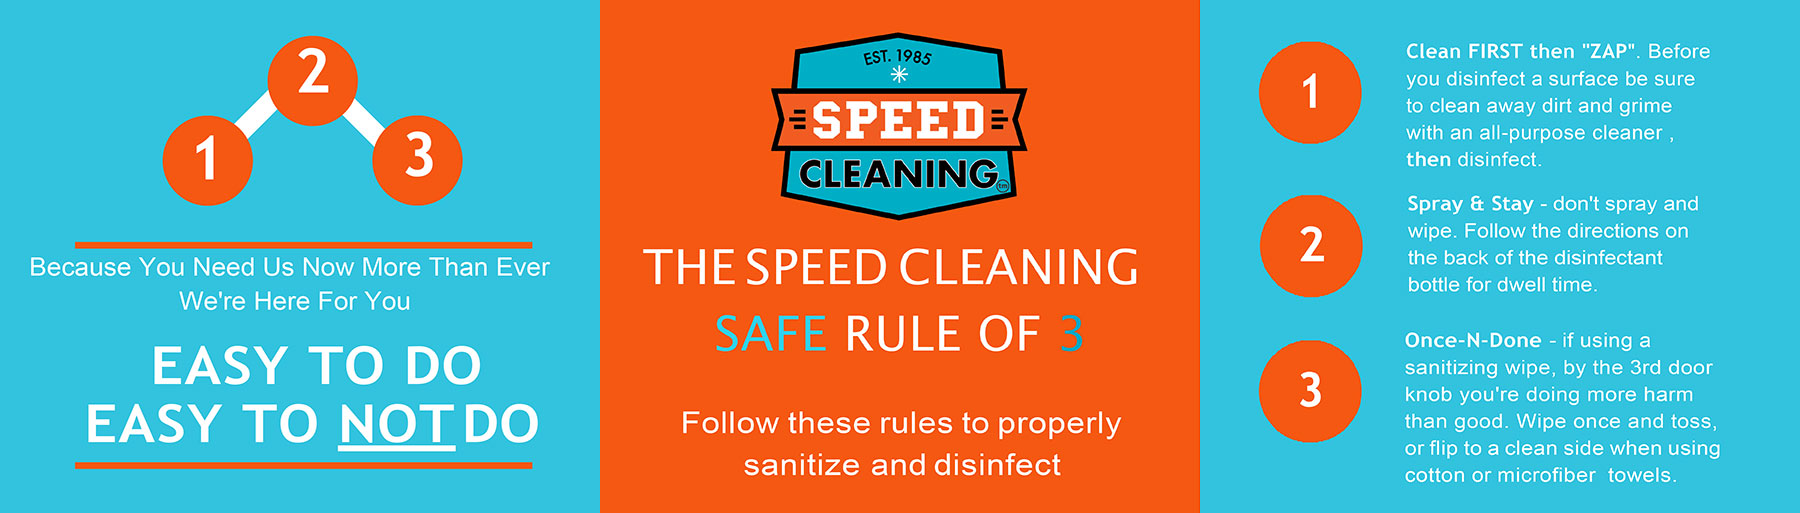 Speed Cleaning Safe Rule of 3